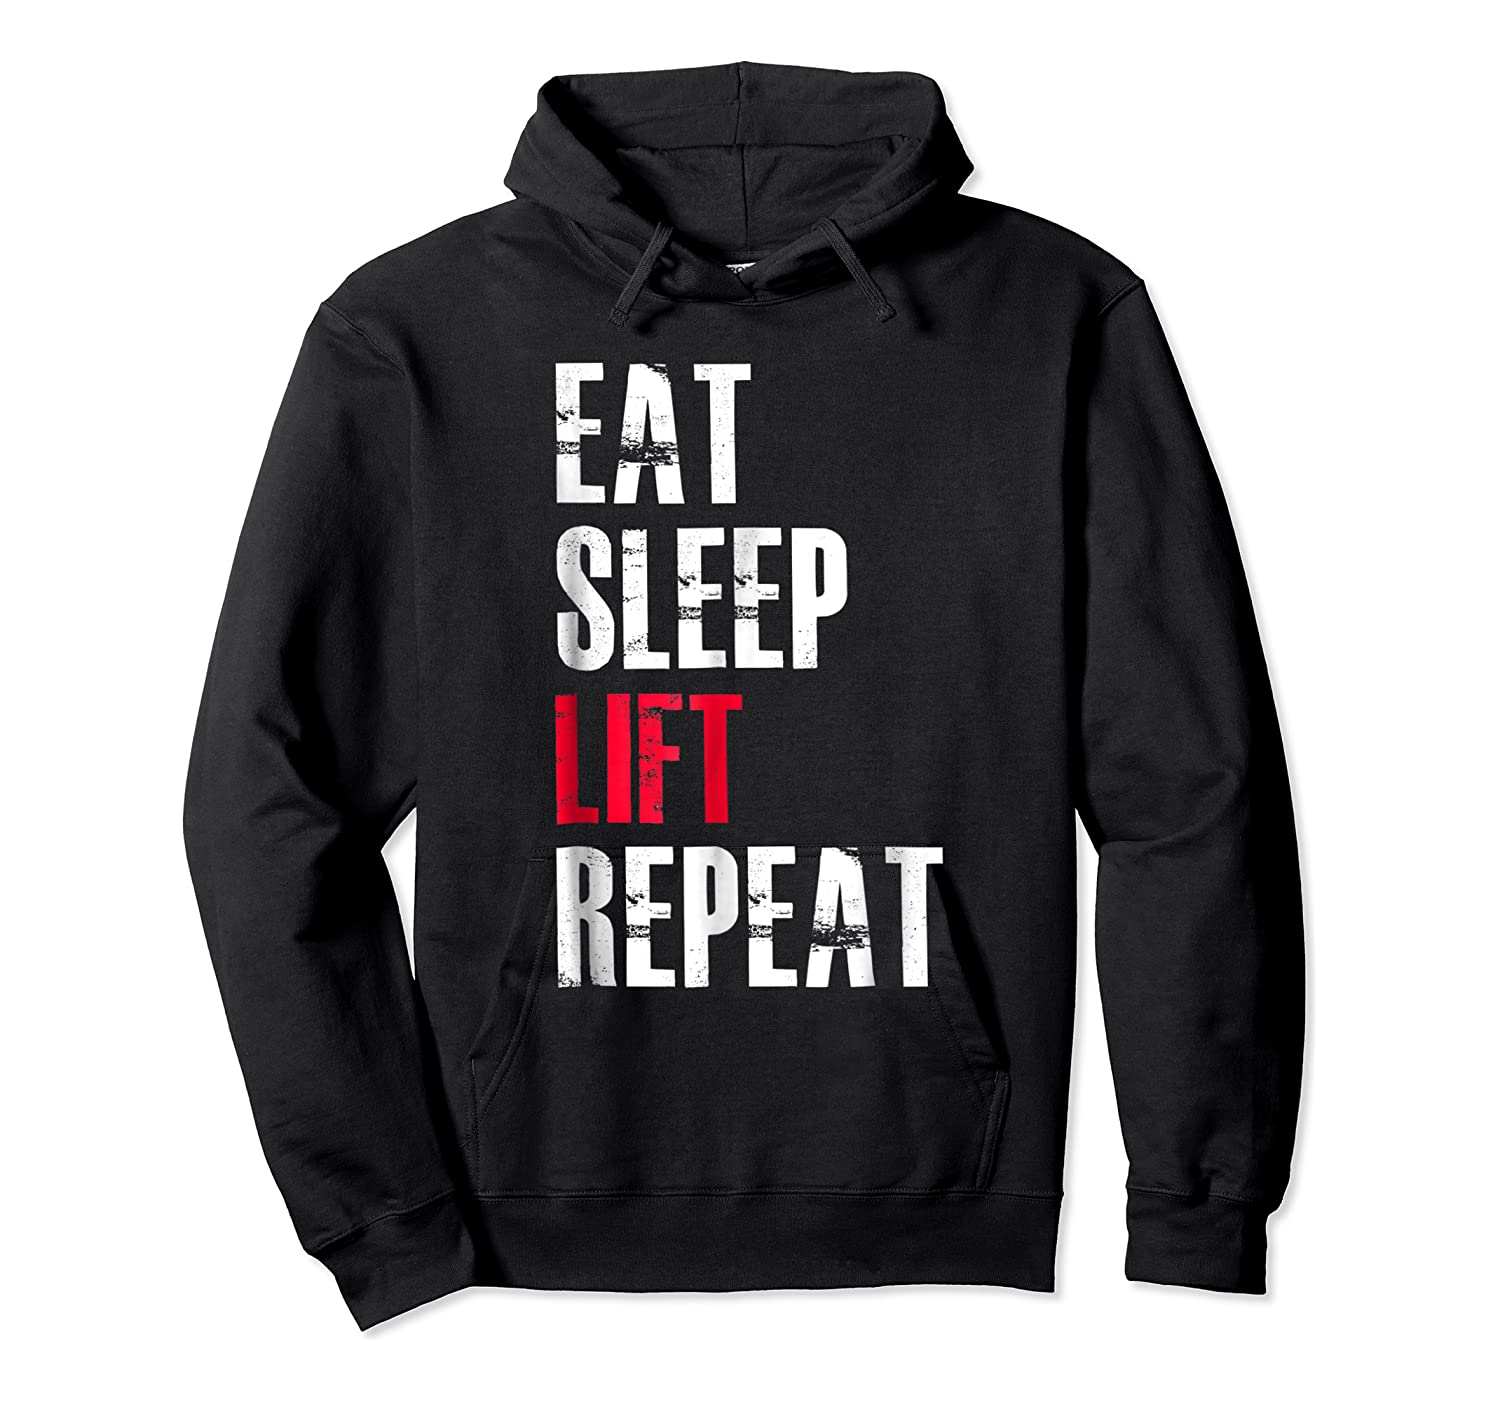 Eat Sleep Lift Repea Funny Gift For Weight Lifters Shirts Unisex Pullover Hoodie